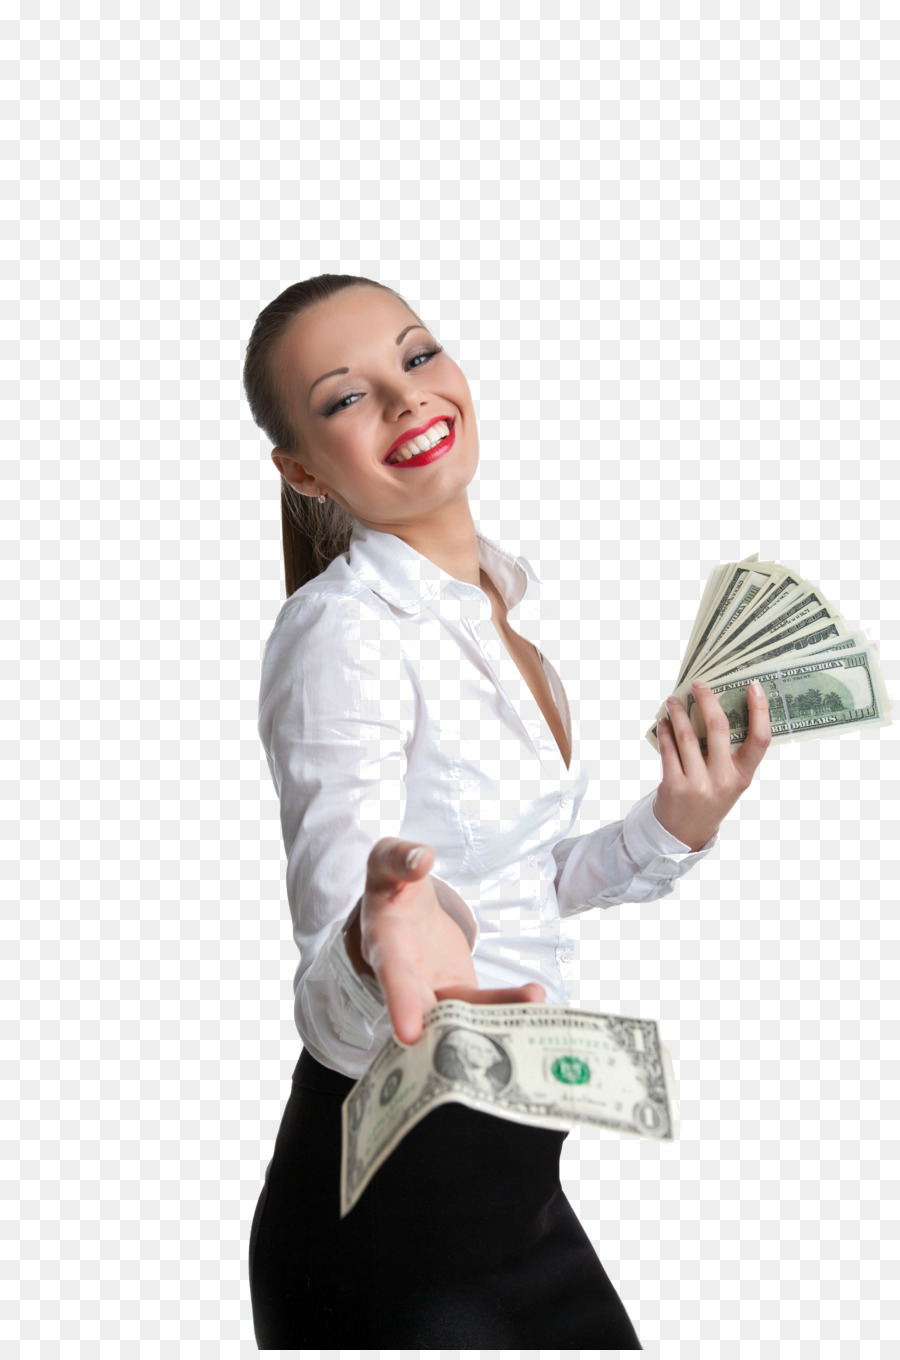 Png Woman With Cash - Money Wallet Woman United States Dollar Banknote - money bag png ...